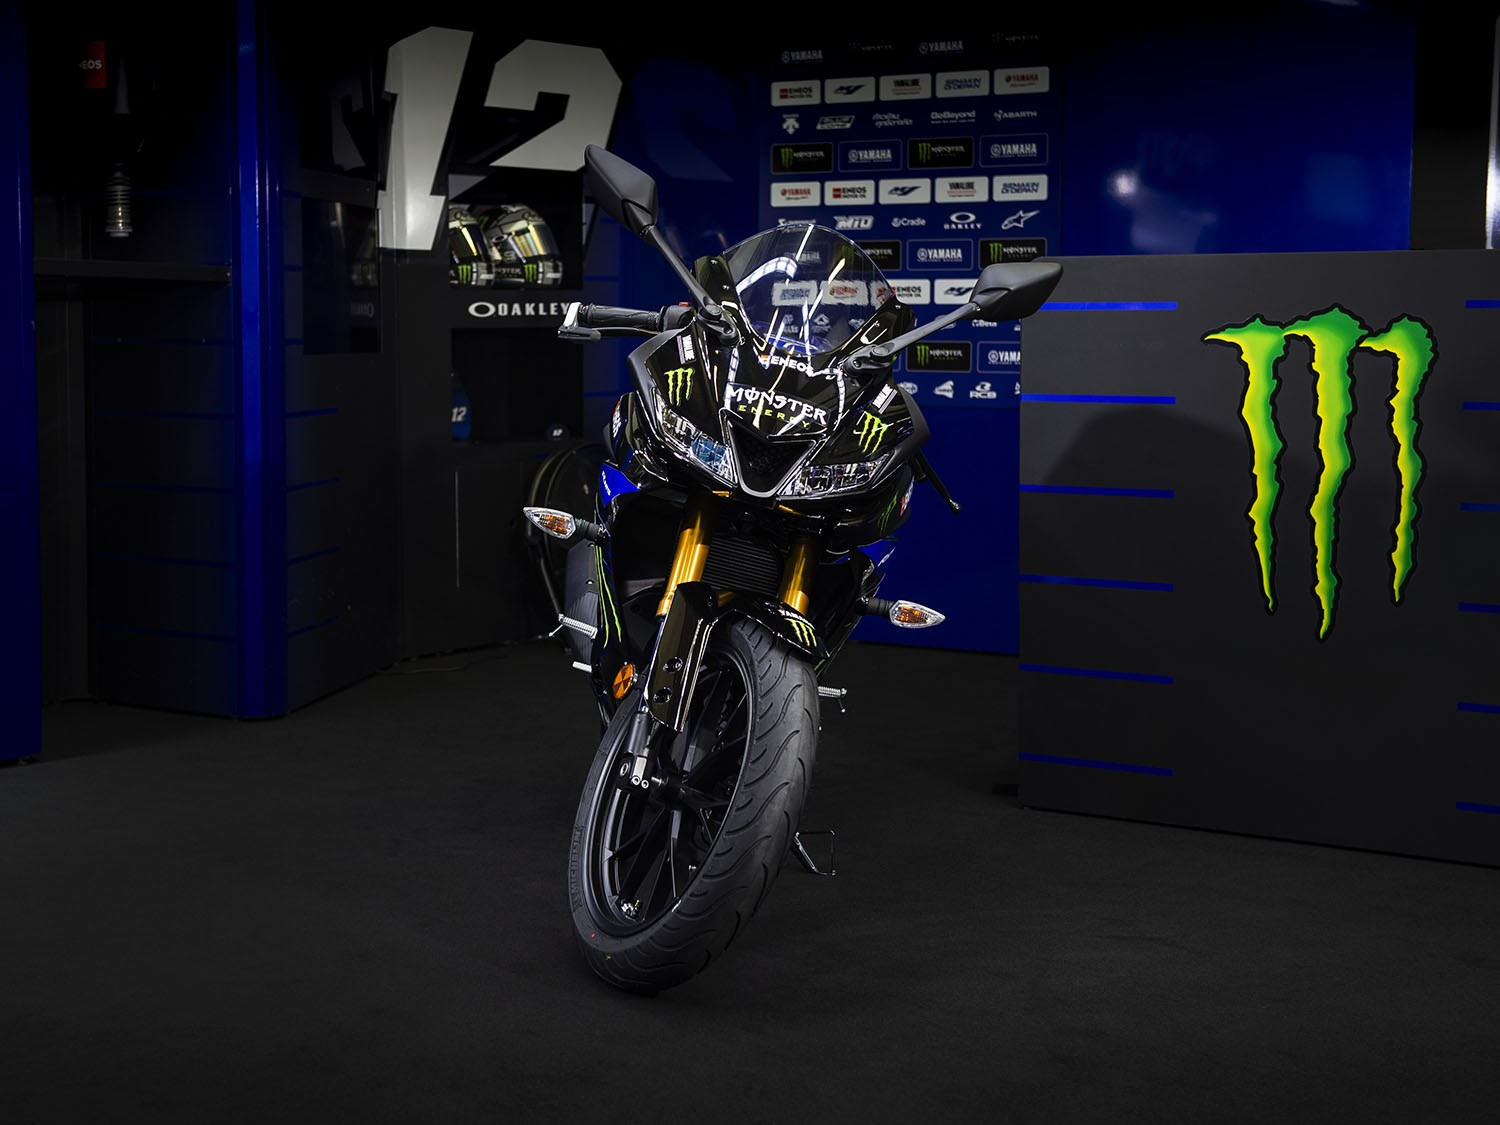 Yamaha Yzf R125 Monster Energy Motogp Edition Launched In